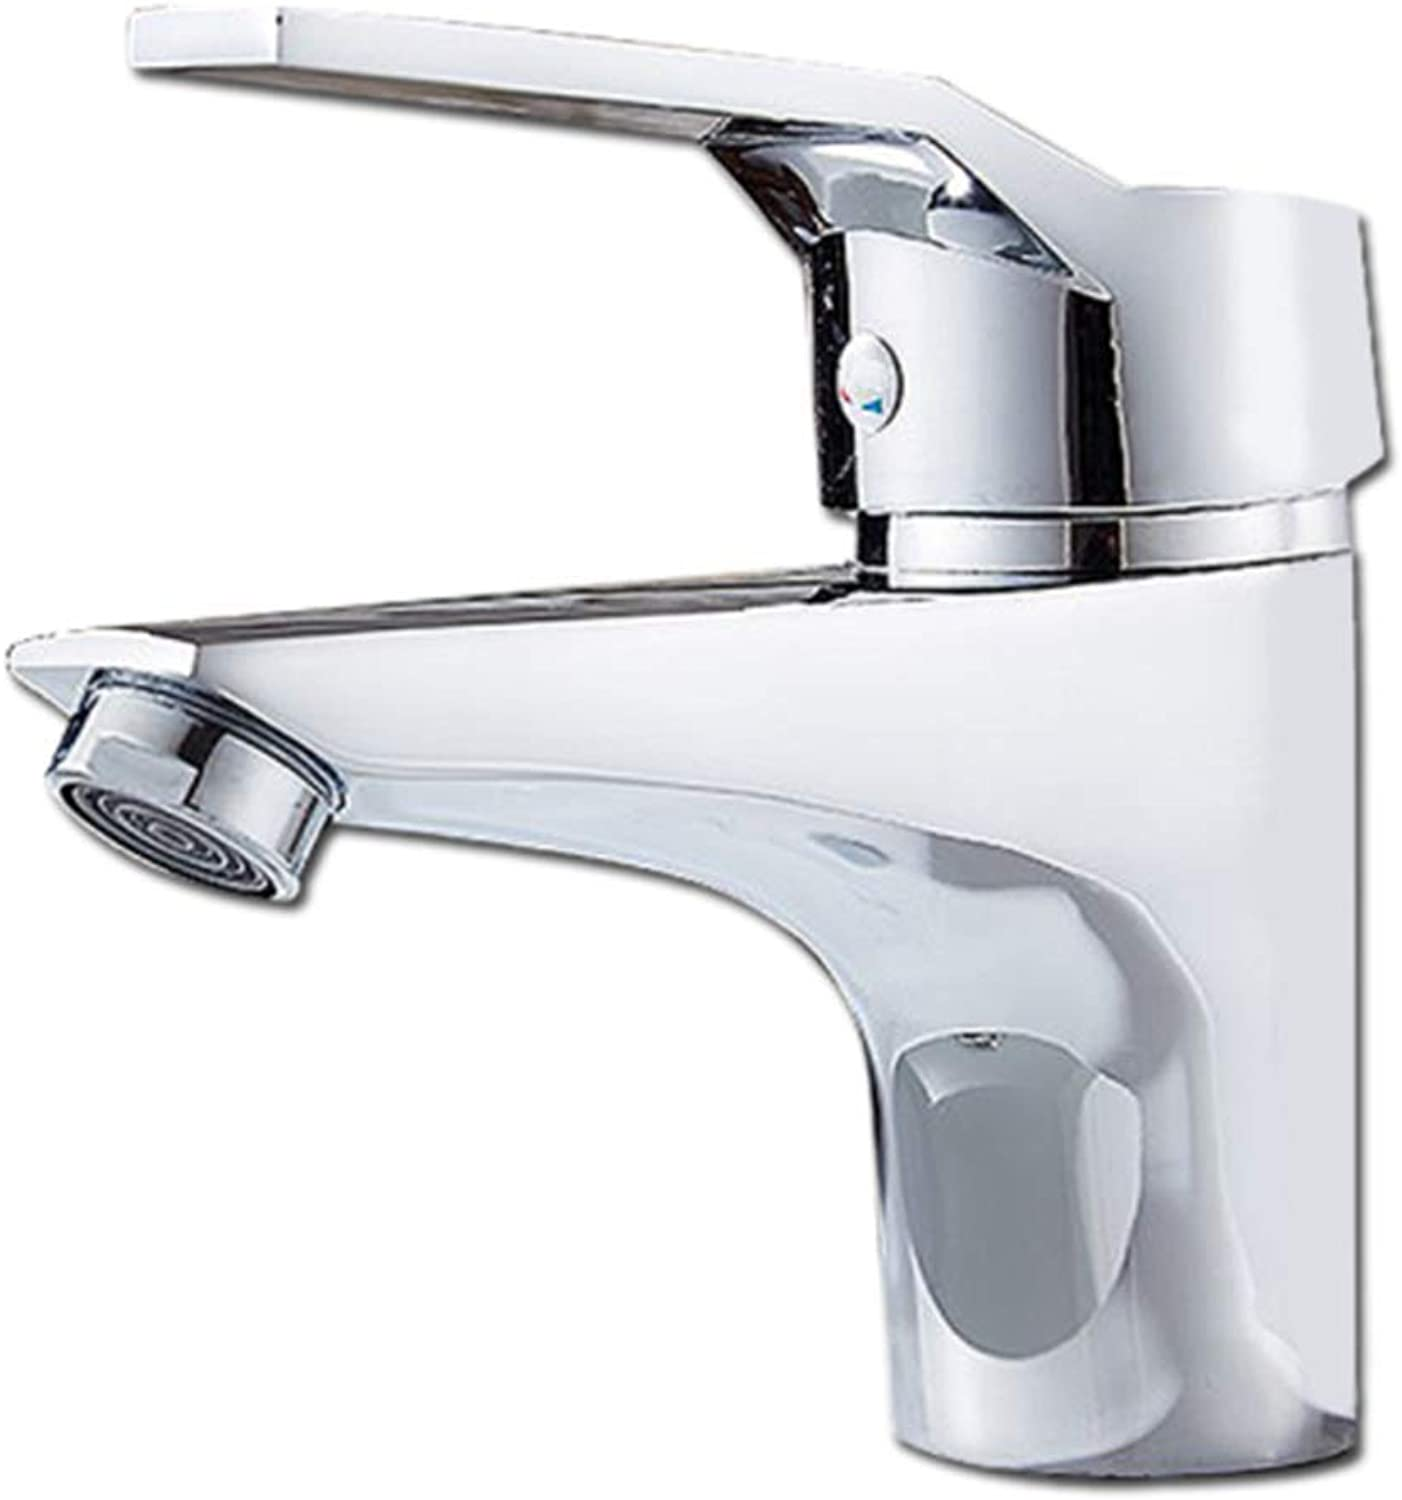 Taps Kitchen Basin Mixer Pull Out Mixerbathroom Basin Faucet Vessel Sink Water Tap Mixer Chrome Cold and Hot Water Sink Faucet